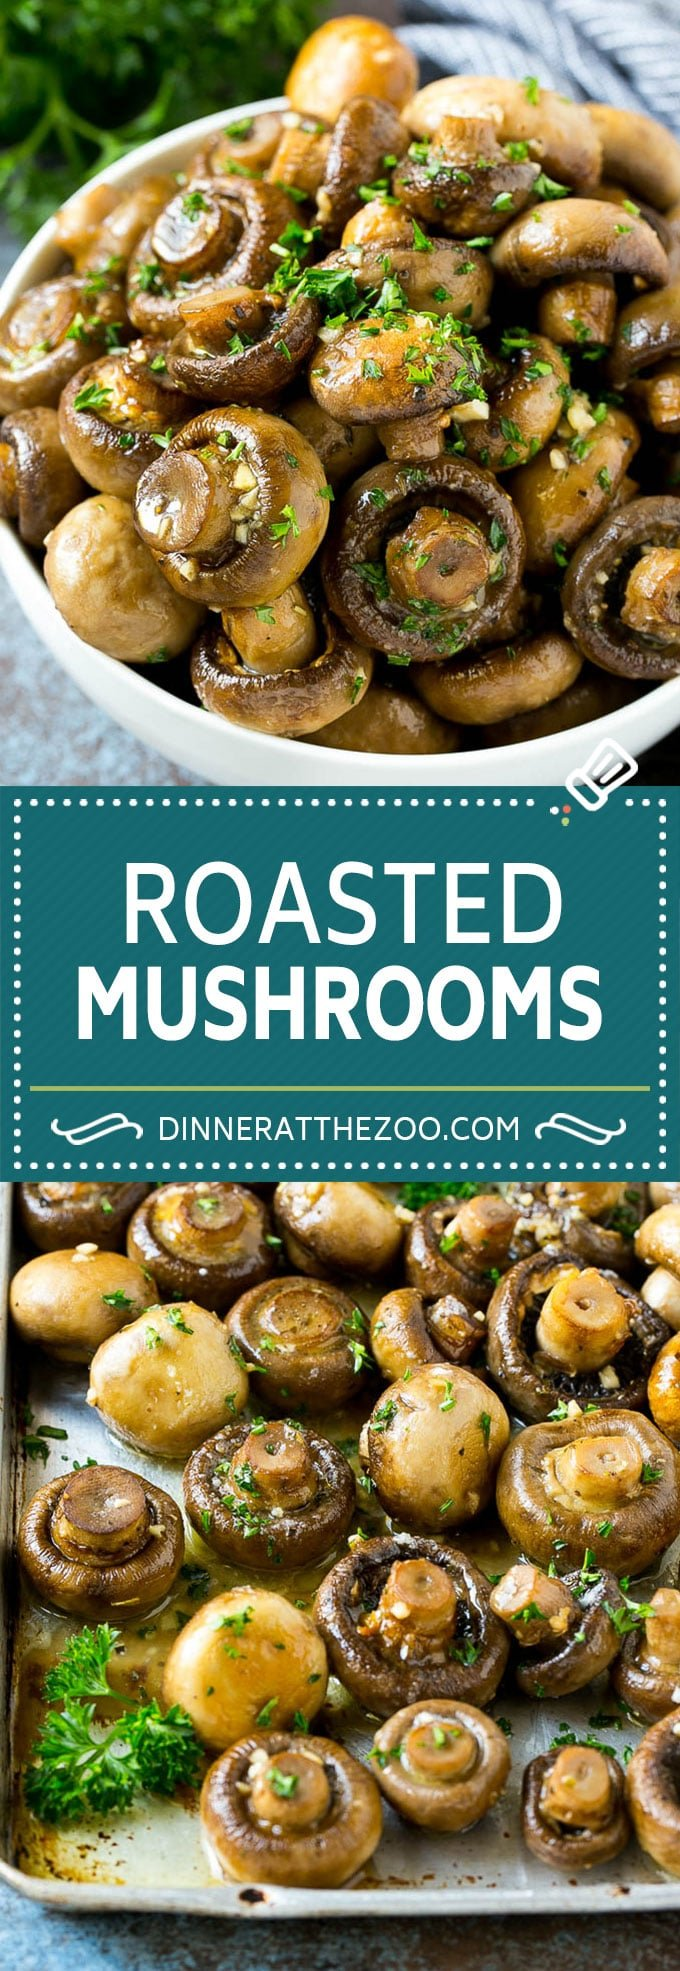 Roasted Mushrooms Recipe | Garlic Mushrooms #mushrooms #appetizer #sidedish #glutenfree #keto #lowcarb #dinner #dinneratthezoo